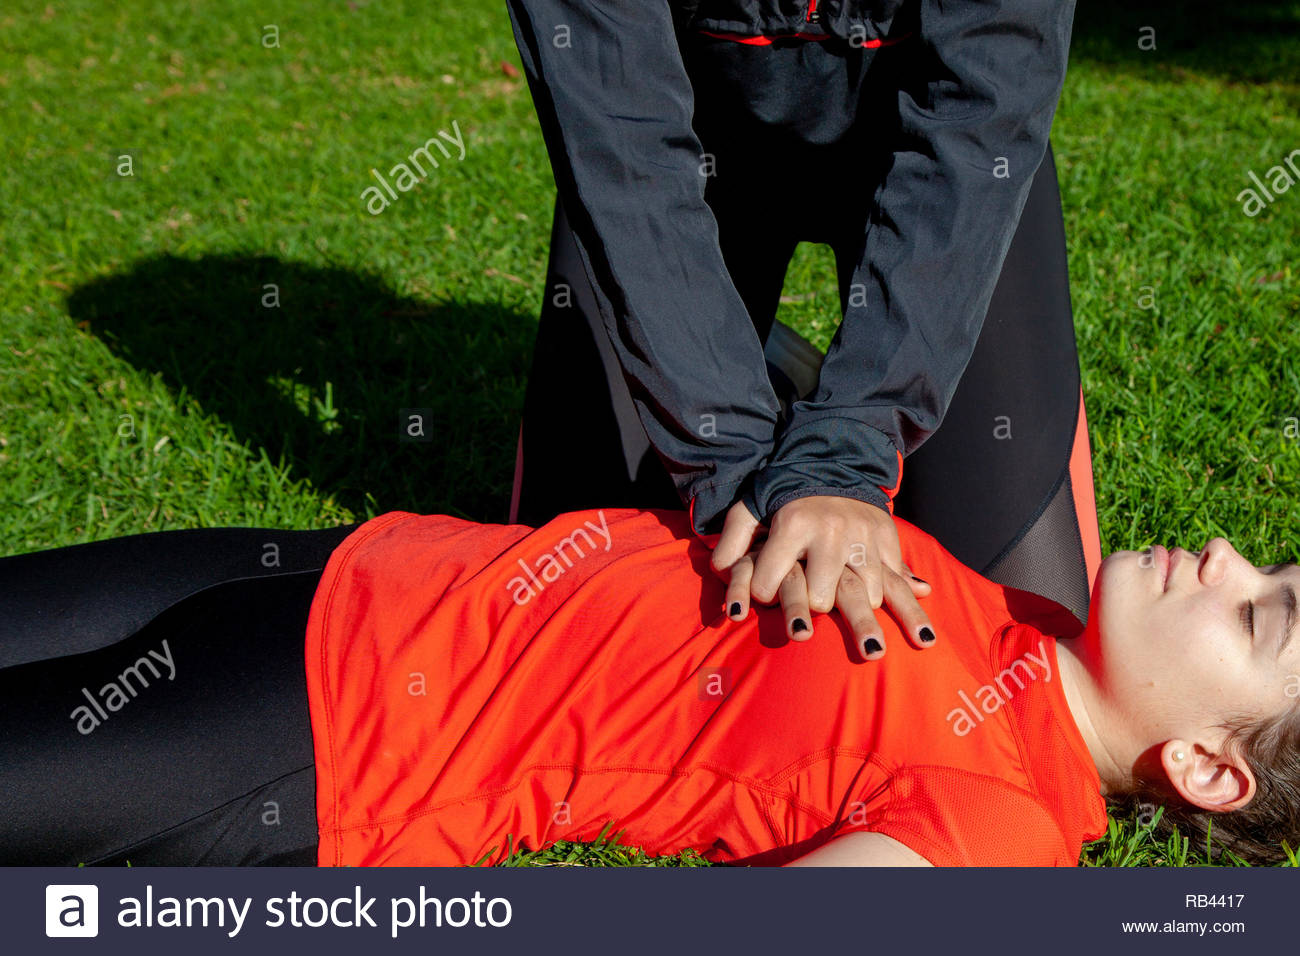 Two young girls practicing cardiopulmonary resuscitation manoeuvres in an open-air park - Stock Image